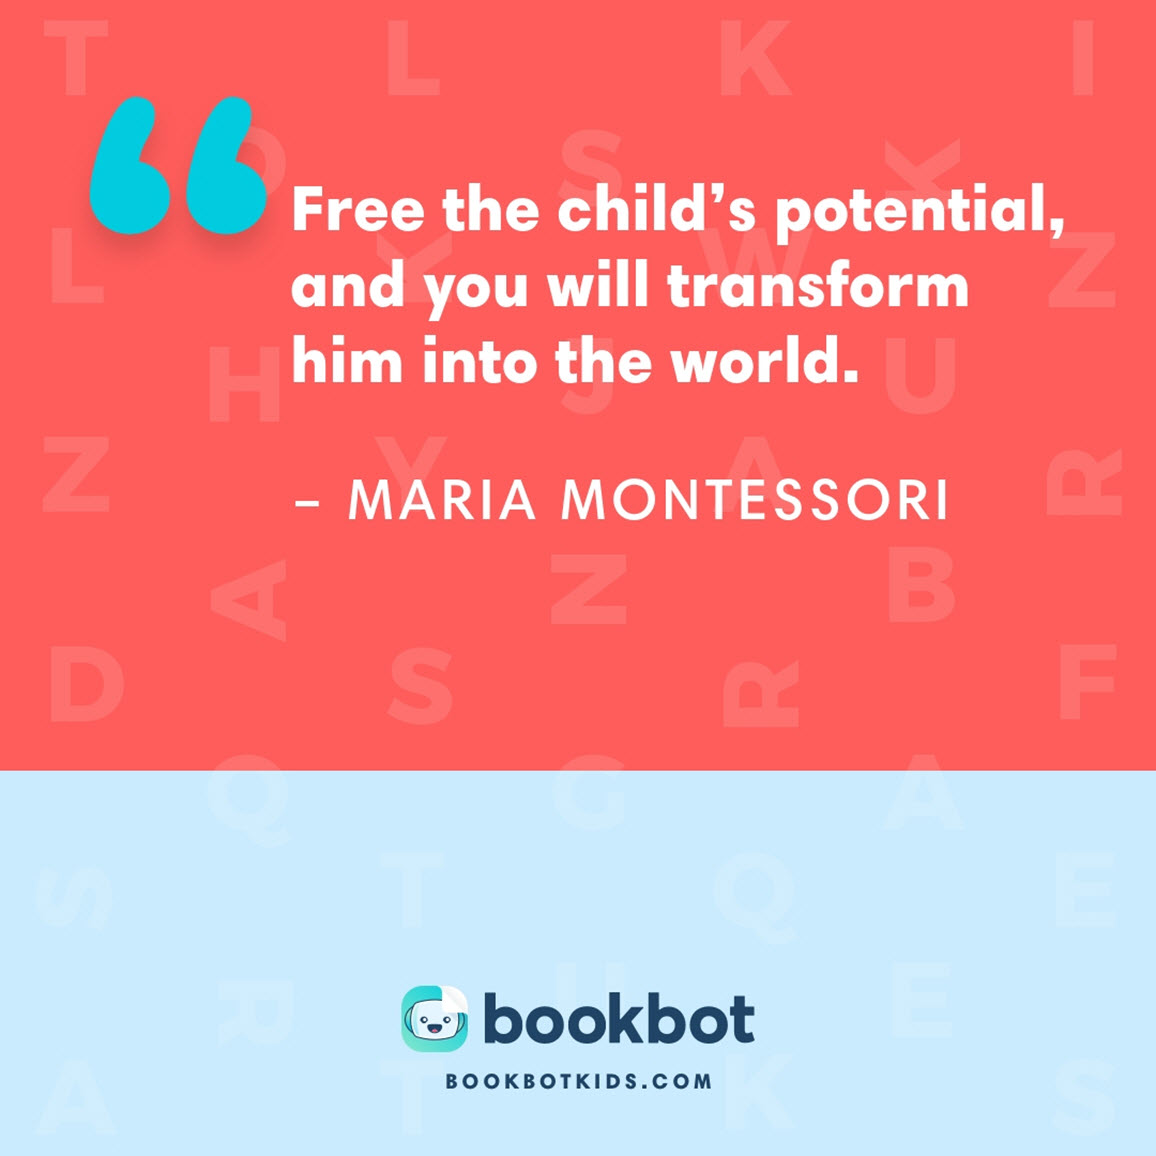 Free the child's potential, and you will transform him into the world. – Maria Montessori